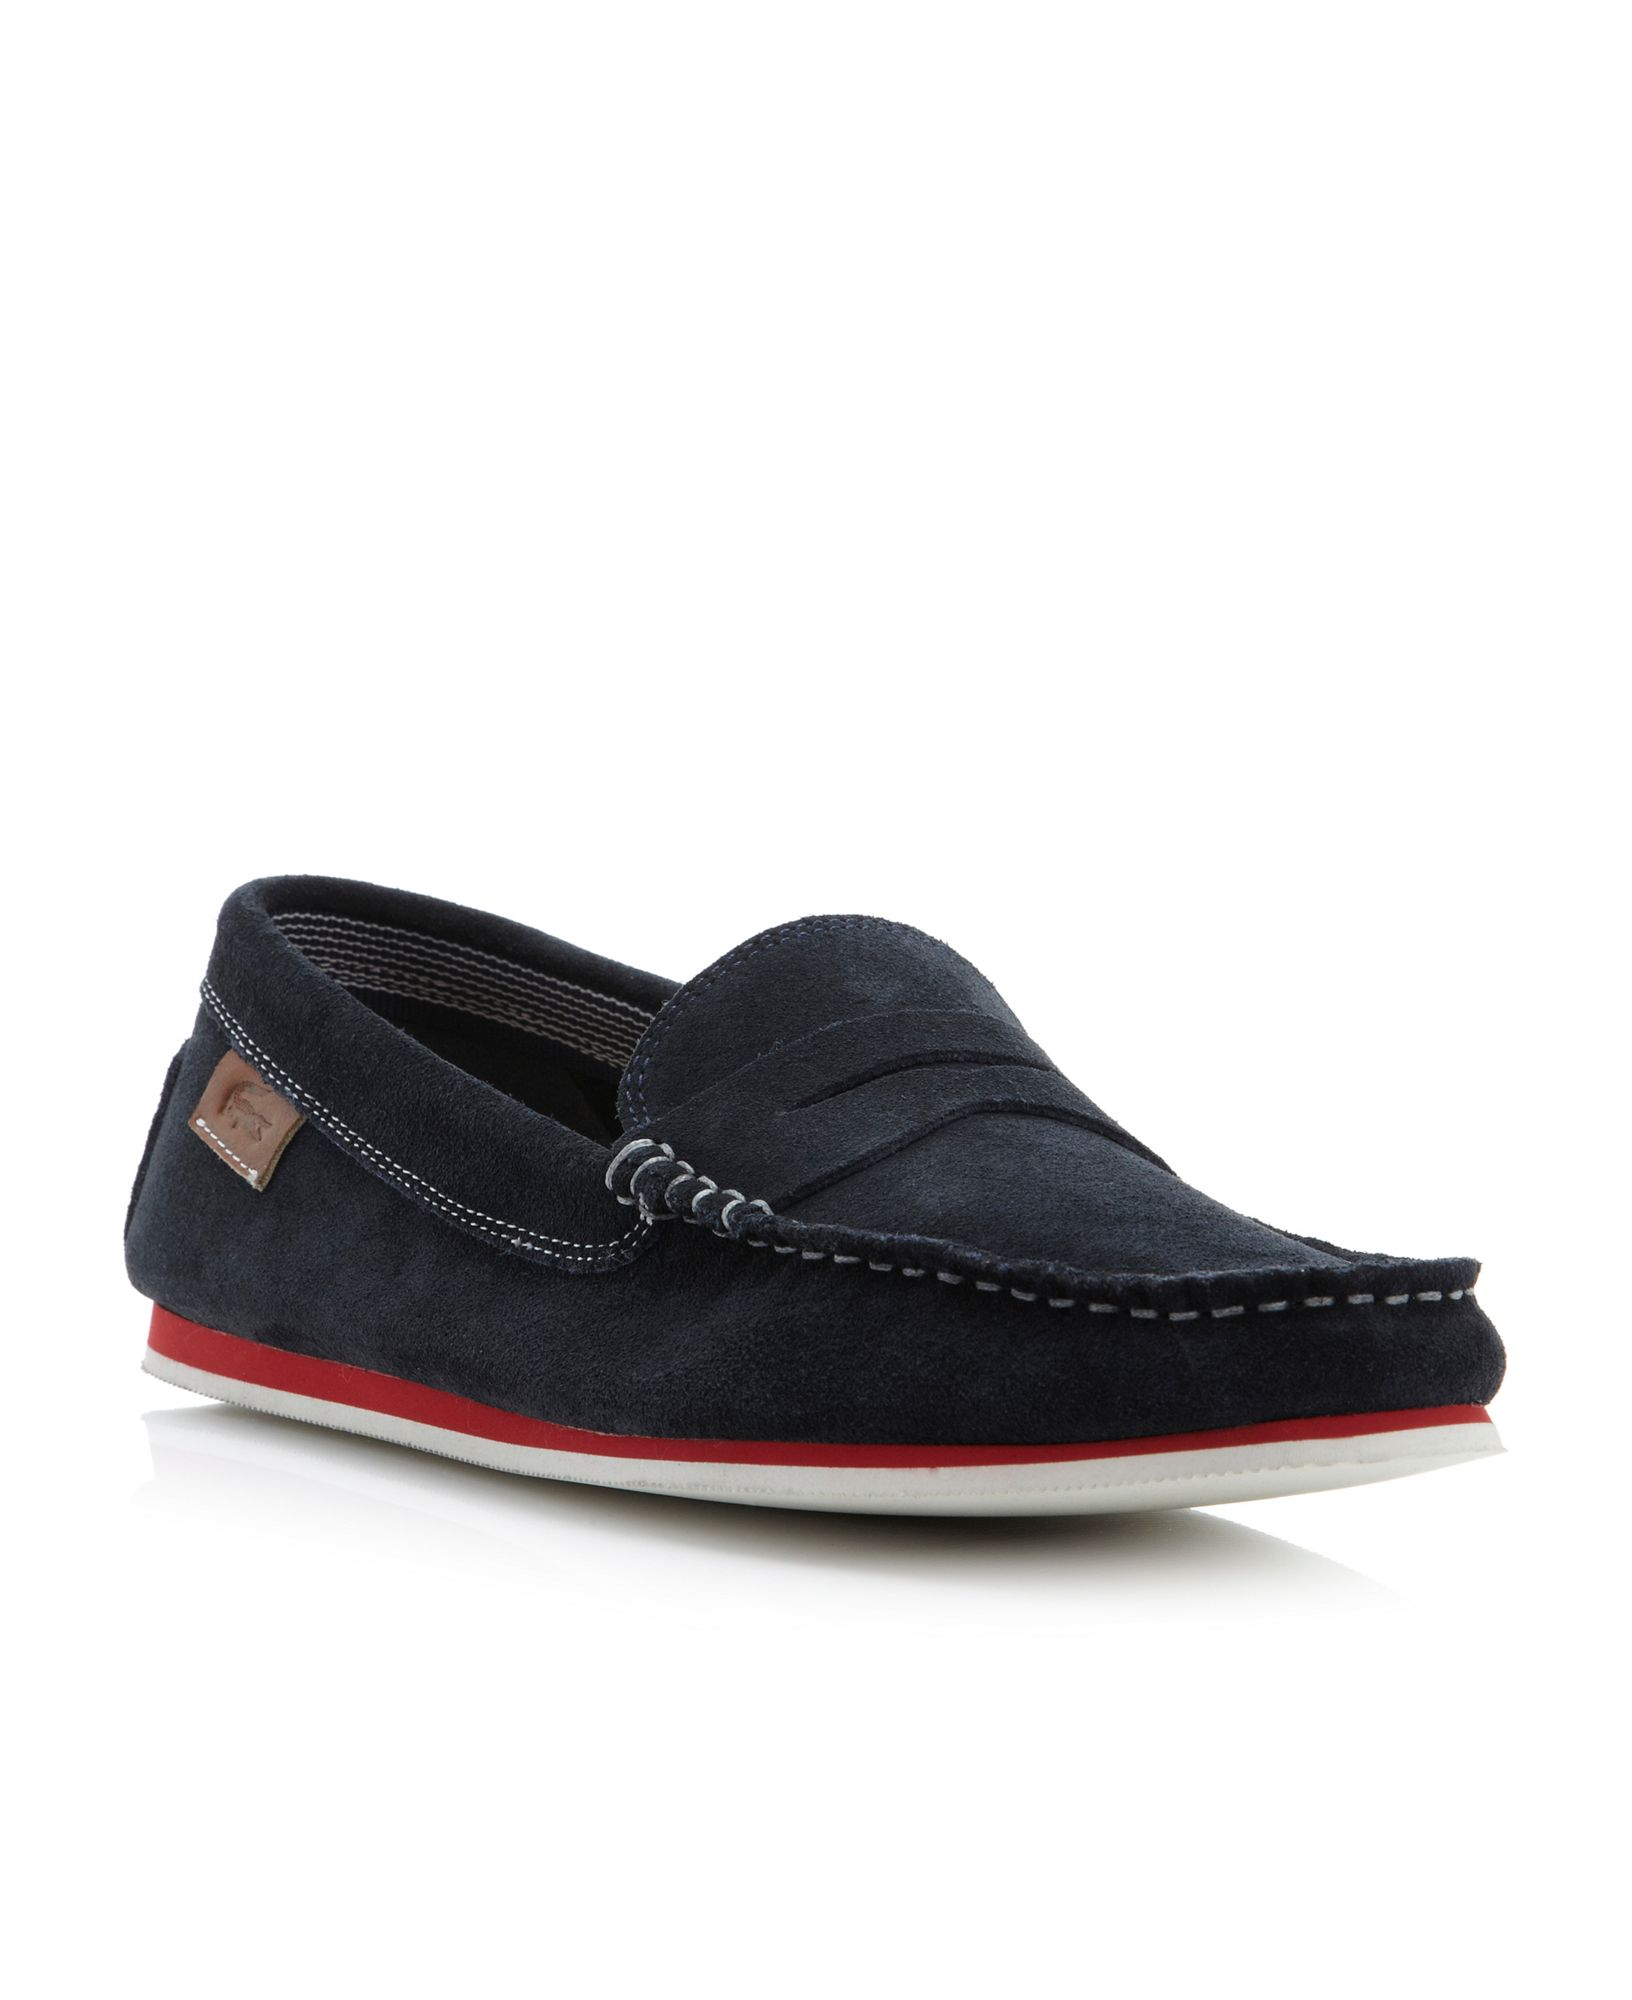 lacoste loafers 28 images lacoste s concours 9 srm lth loafers in navy 7 lacoste lacoste. Black Bedroom Furniture Sets. Home Design Ideas